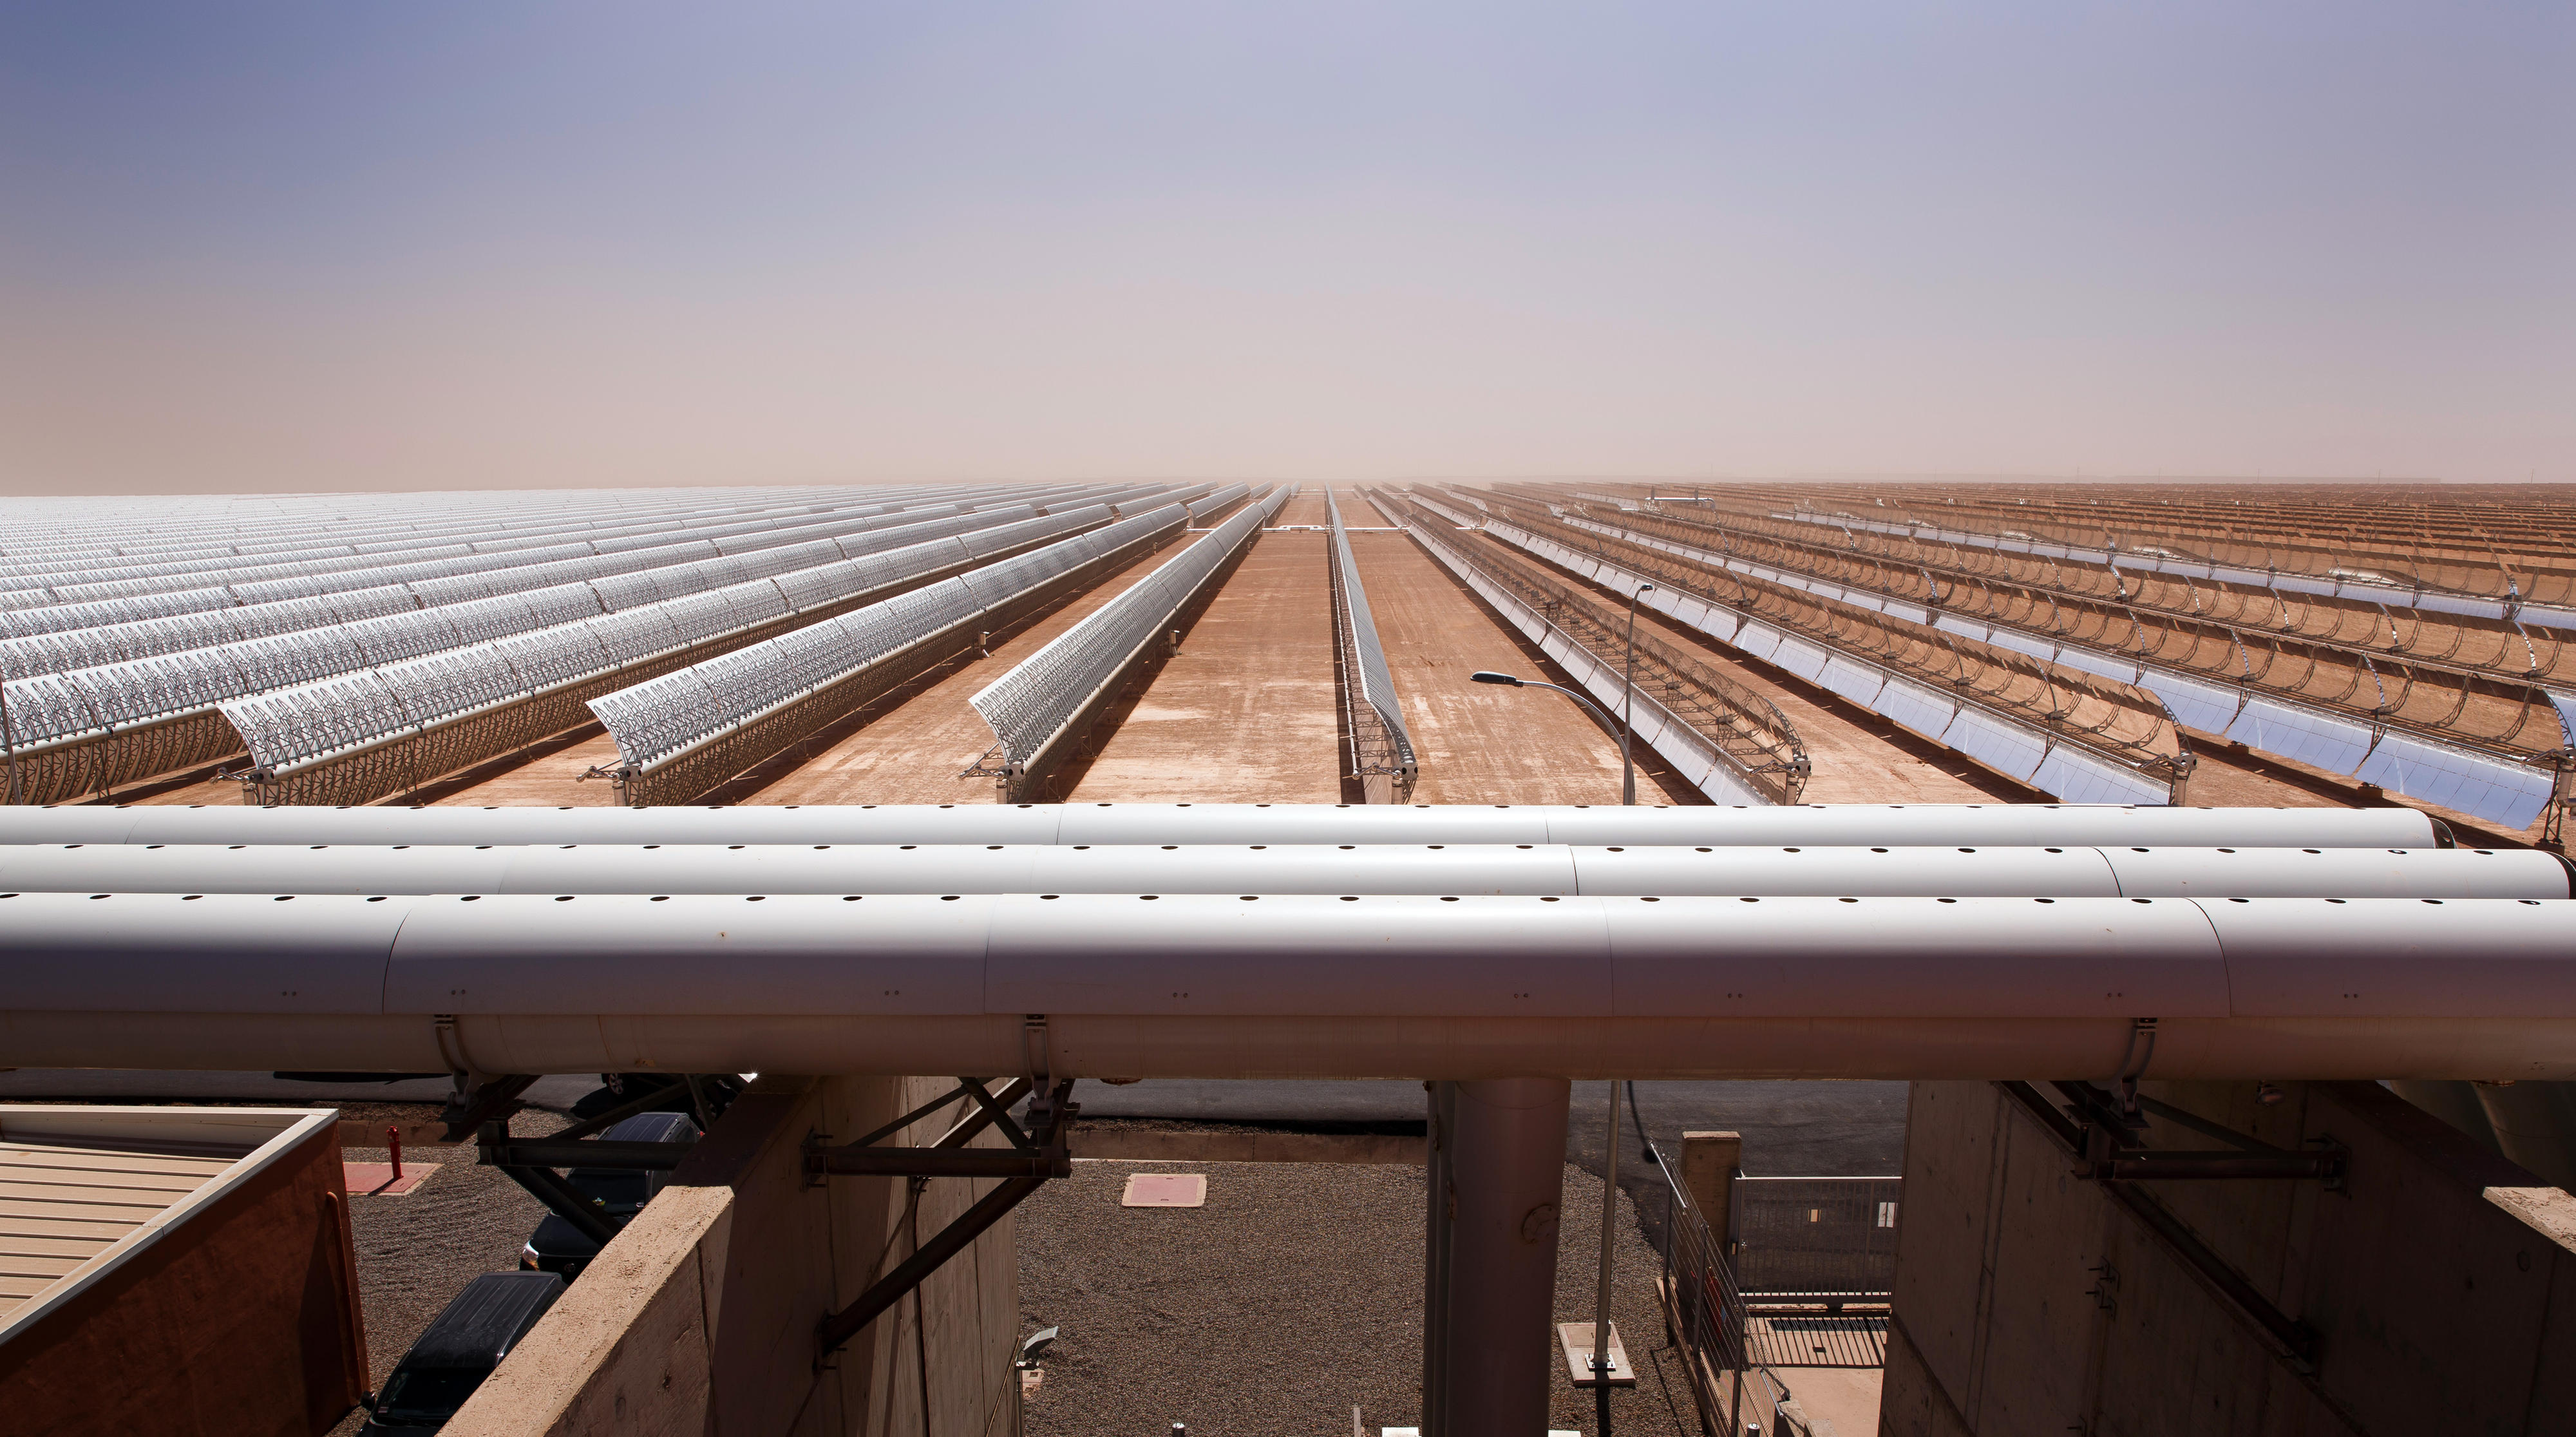 Solar panels of a solar power plant in Ouarzazate, Morocco